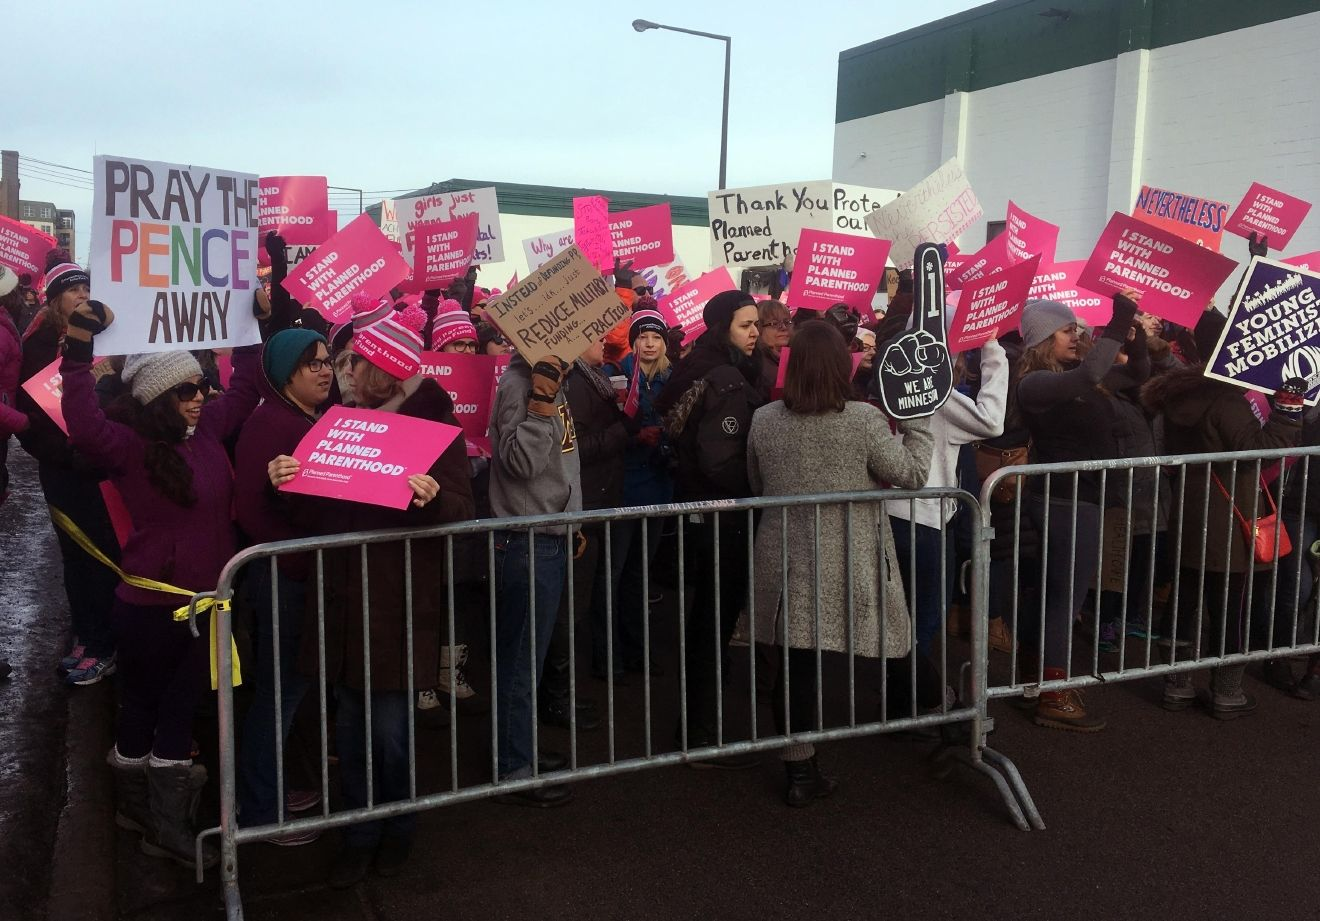 Supporters of Planned Parenthood hold counter protest as abortion opponents demonstrate outside Planned Parenthood  in St. Paul, Minn., on Saturday, Feb. 11, 2017.  Rallies aimed at urging Congress and President Donald Trump to end federal funding for Planned Parenthood are scheduled across the country.  (AP Photo/Jeff Baenen)